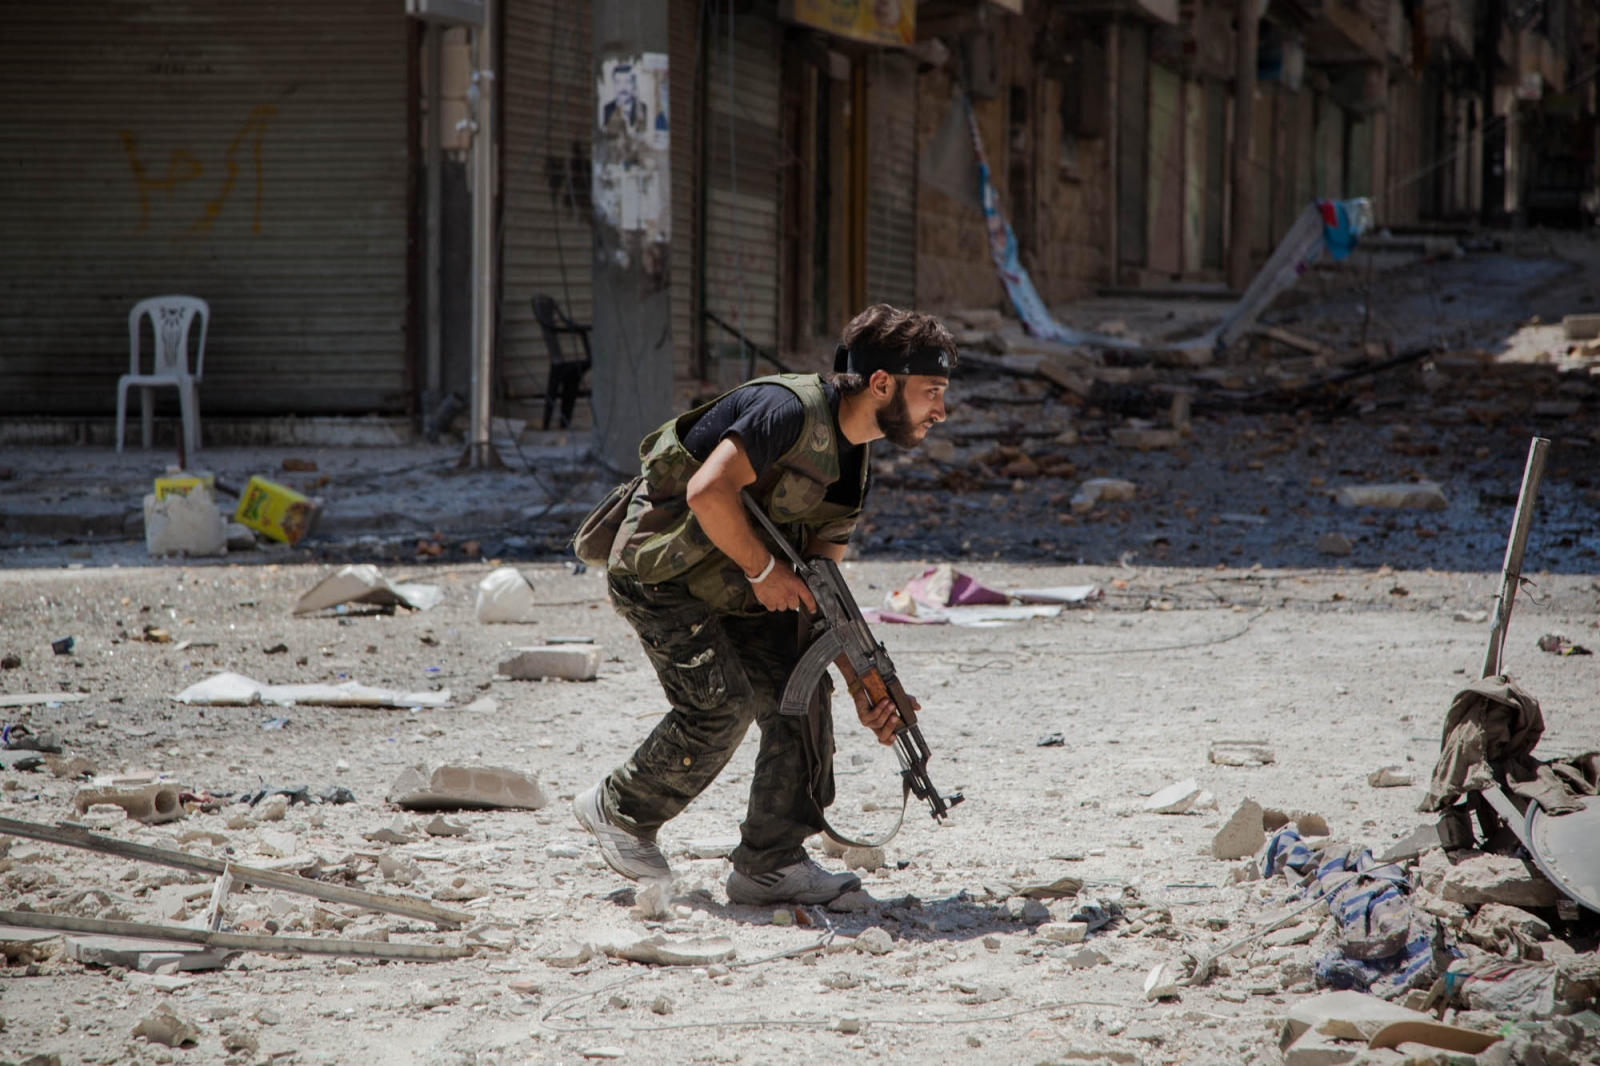 A fighter with the Free Syrian Army runs out in to an intersection before firing at government forces on the frontline in the Salaheddine neighborhood of Aleppo, Syria, on August 8, 2012.